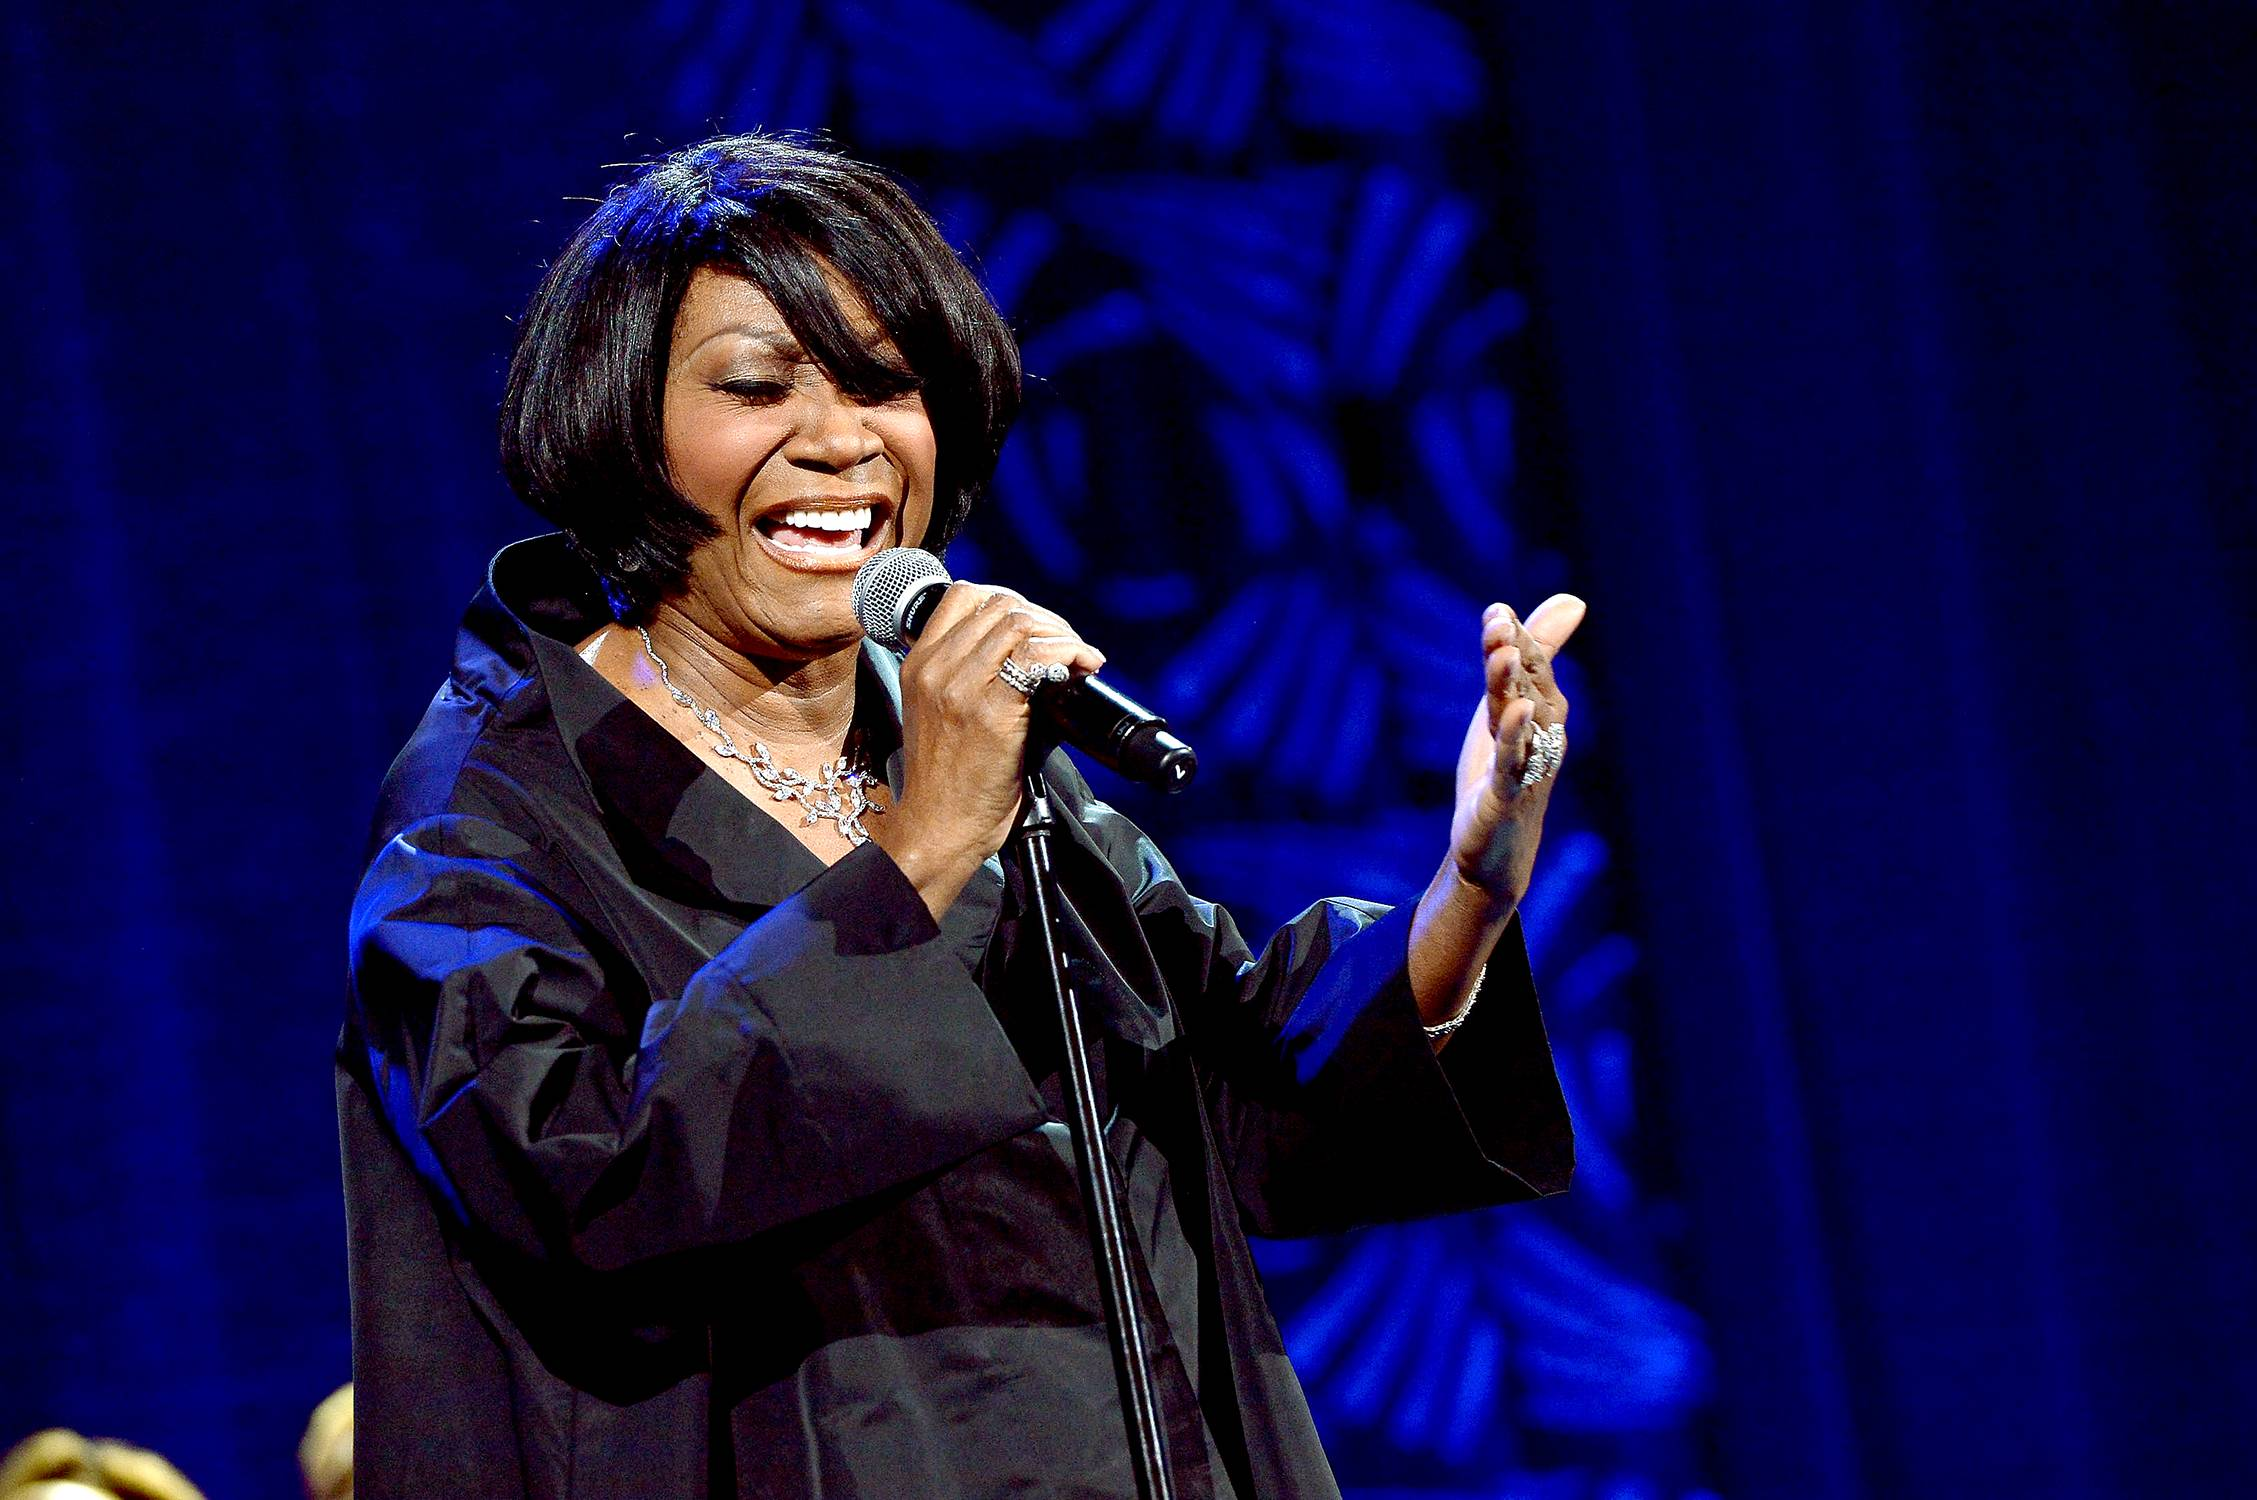 Kick Off Your Shoes  - Singer Patti LaBelle performs onstage at theSuper Bowl Gospel Celebration2014at The Theater at Madison Square Garden in New York City. (Photo: Rick Diamond/Getty Images for Super Bowl)